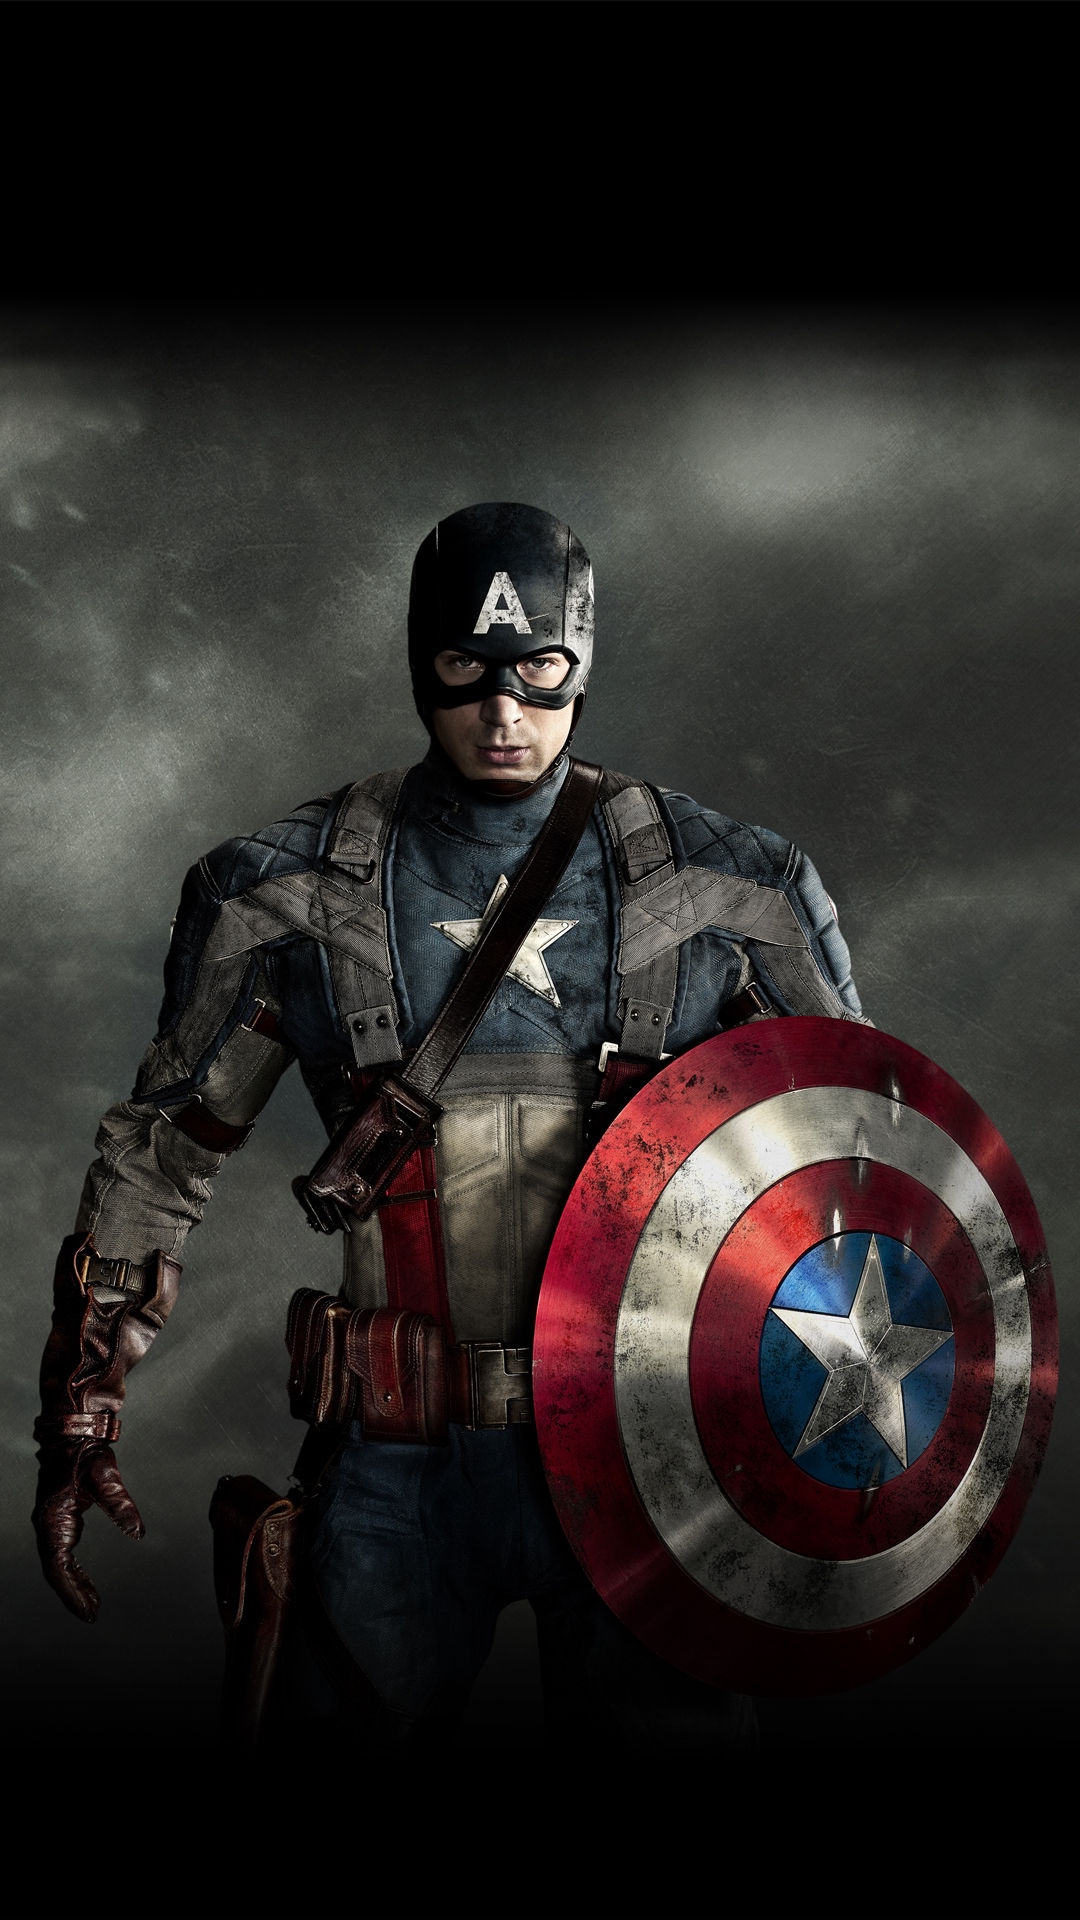 The Avengers Captain America Htc Hd Wallpaper